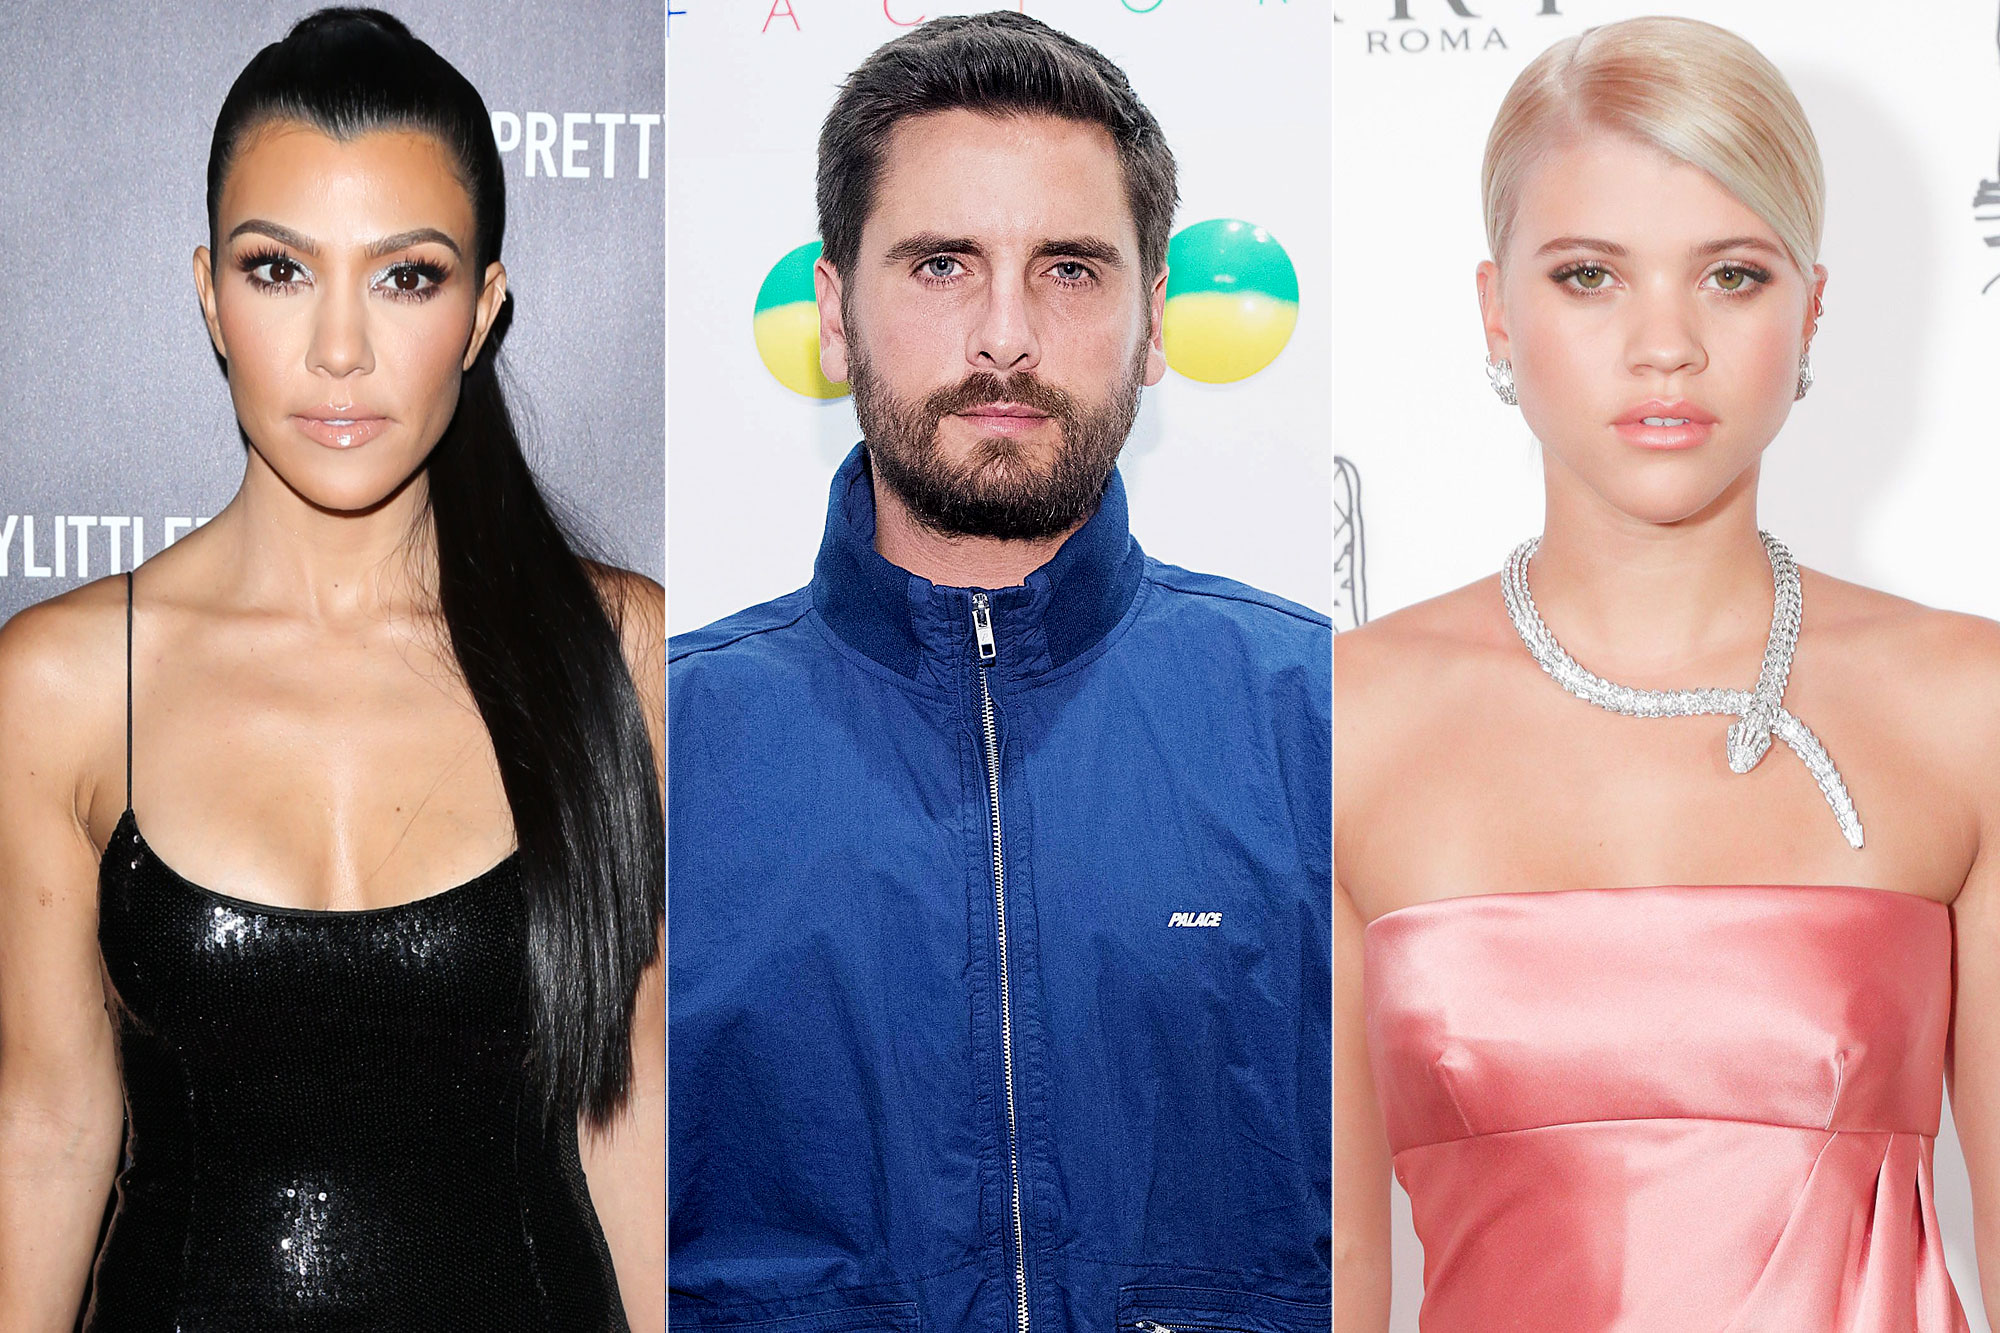 kuwk-scott-disick-explains-how-he-stays-close-with-kourtney-kardashian-while-making-sure-sofia-richie-still-trusts-him